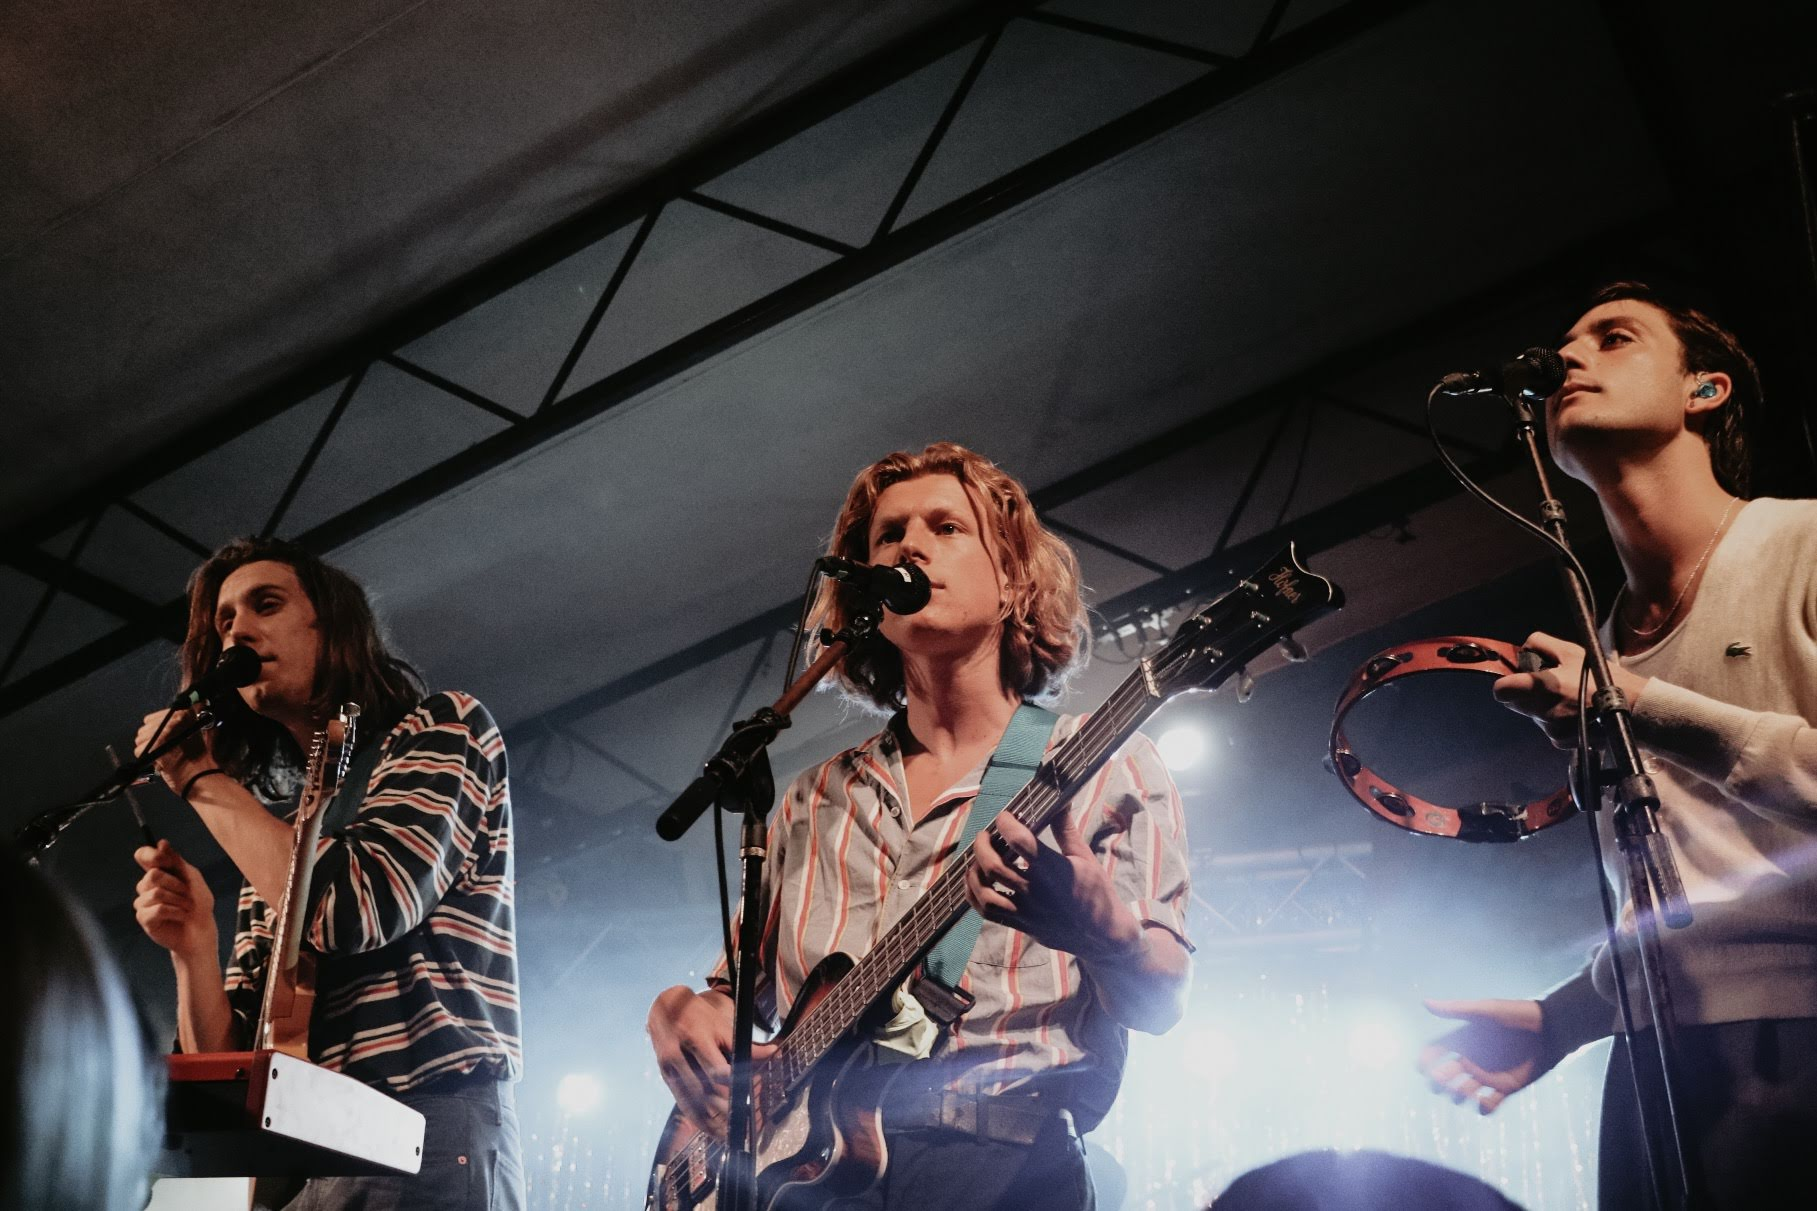 Parcels - LIVE PHOTOS